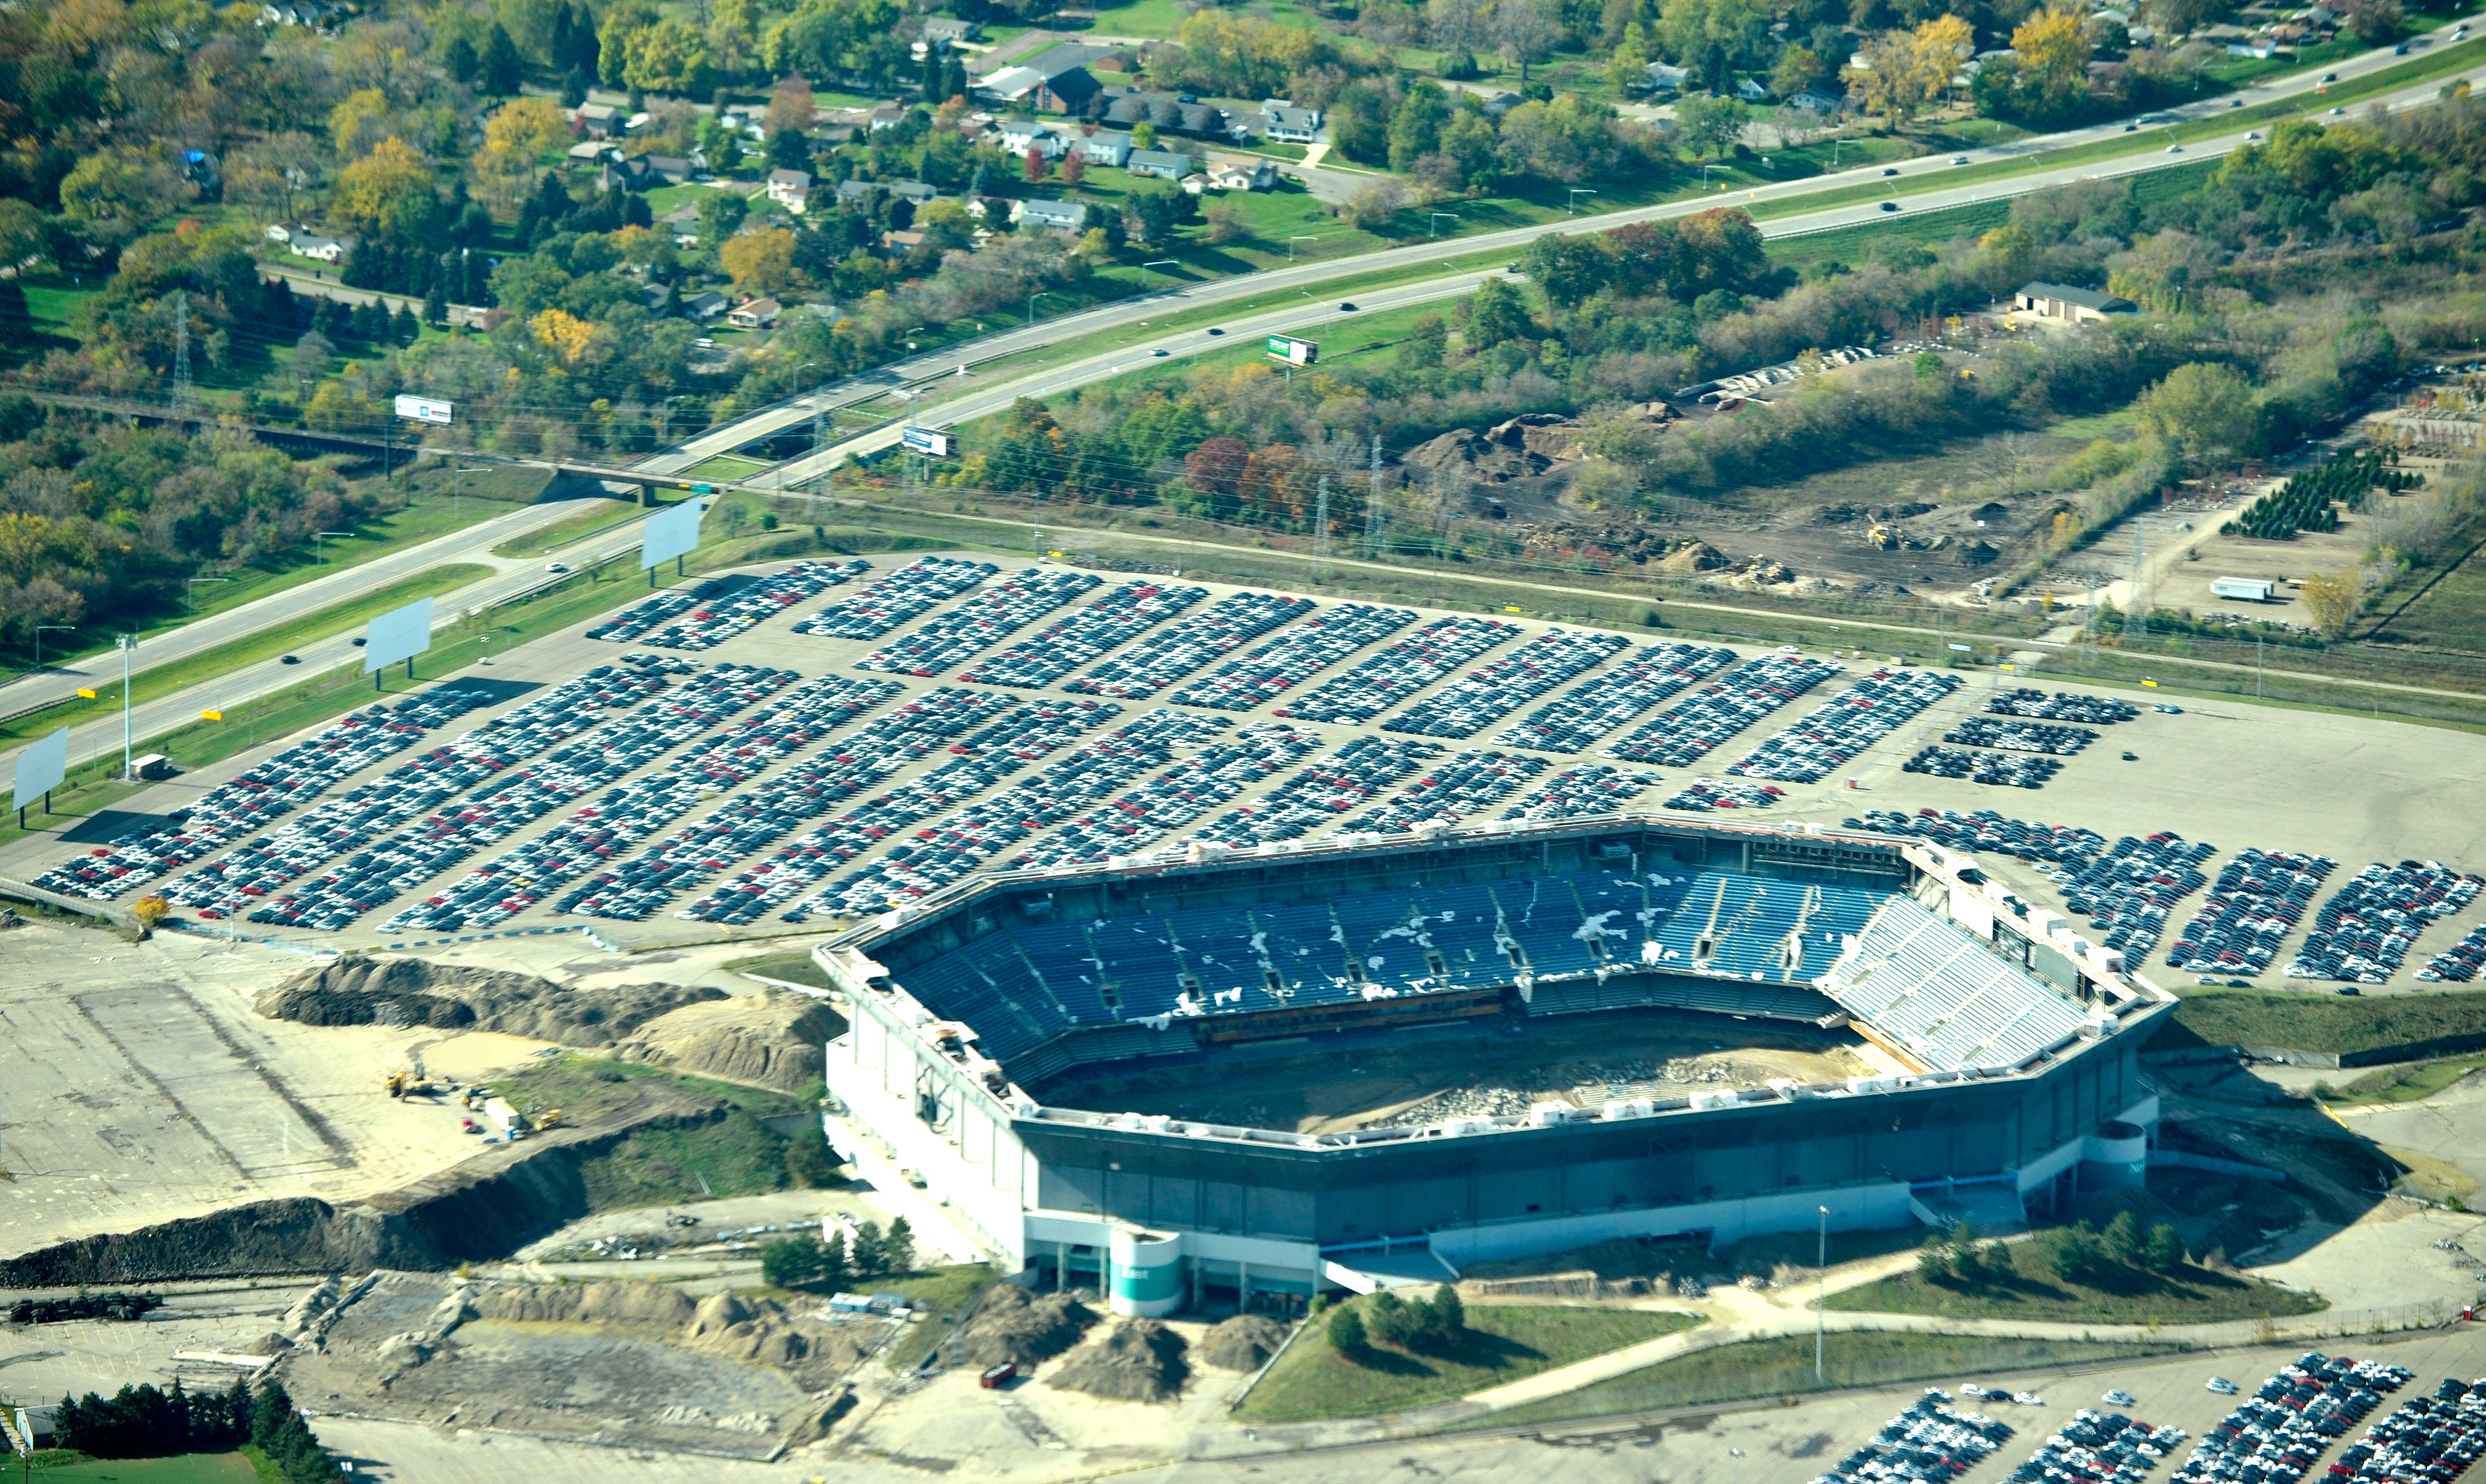 What remains of the Silverdome is seen in an aerial